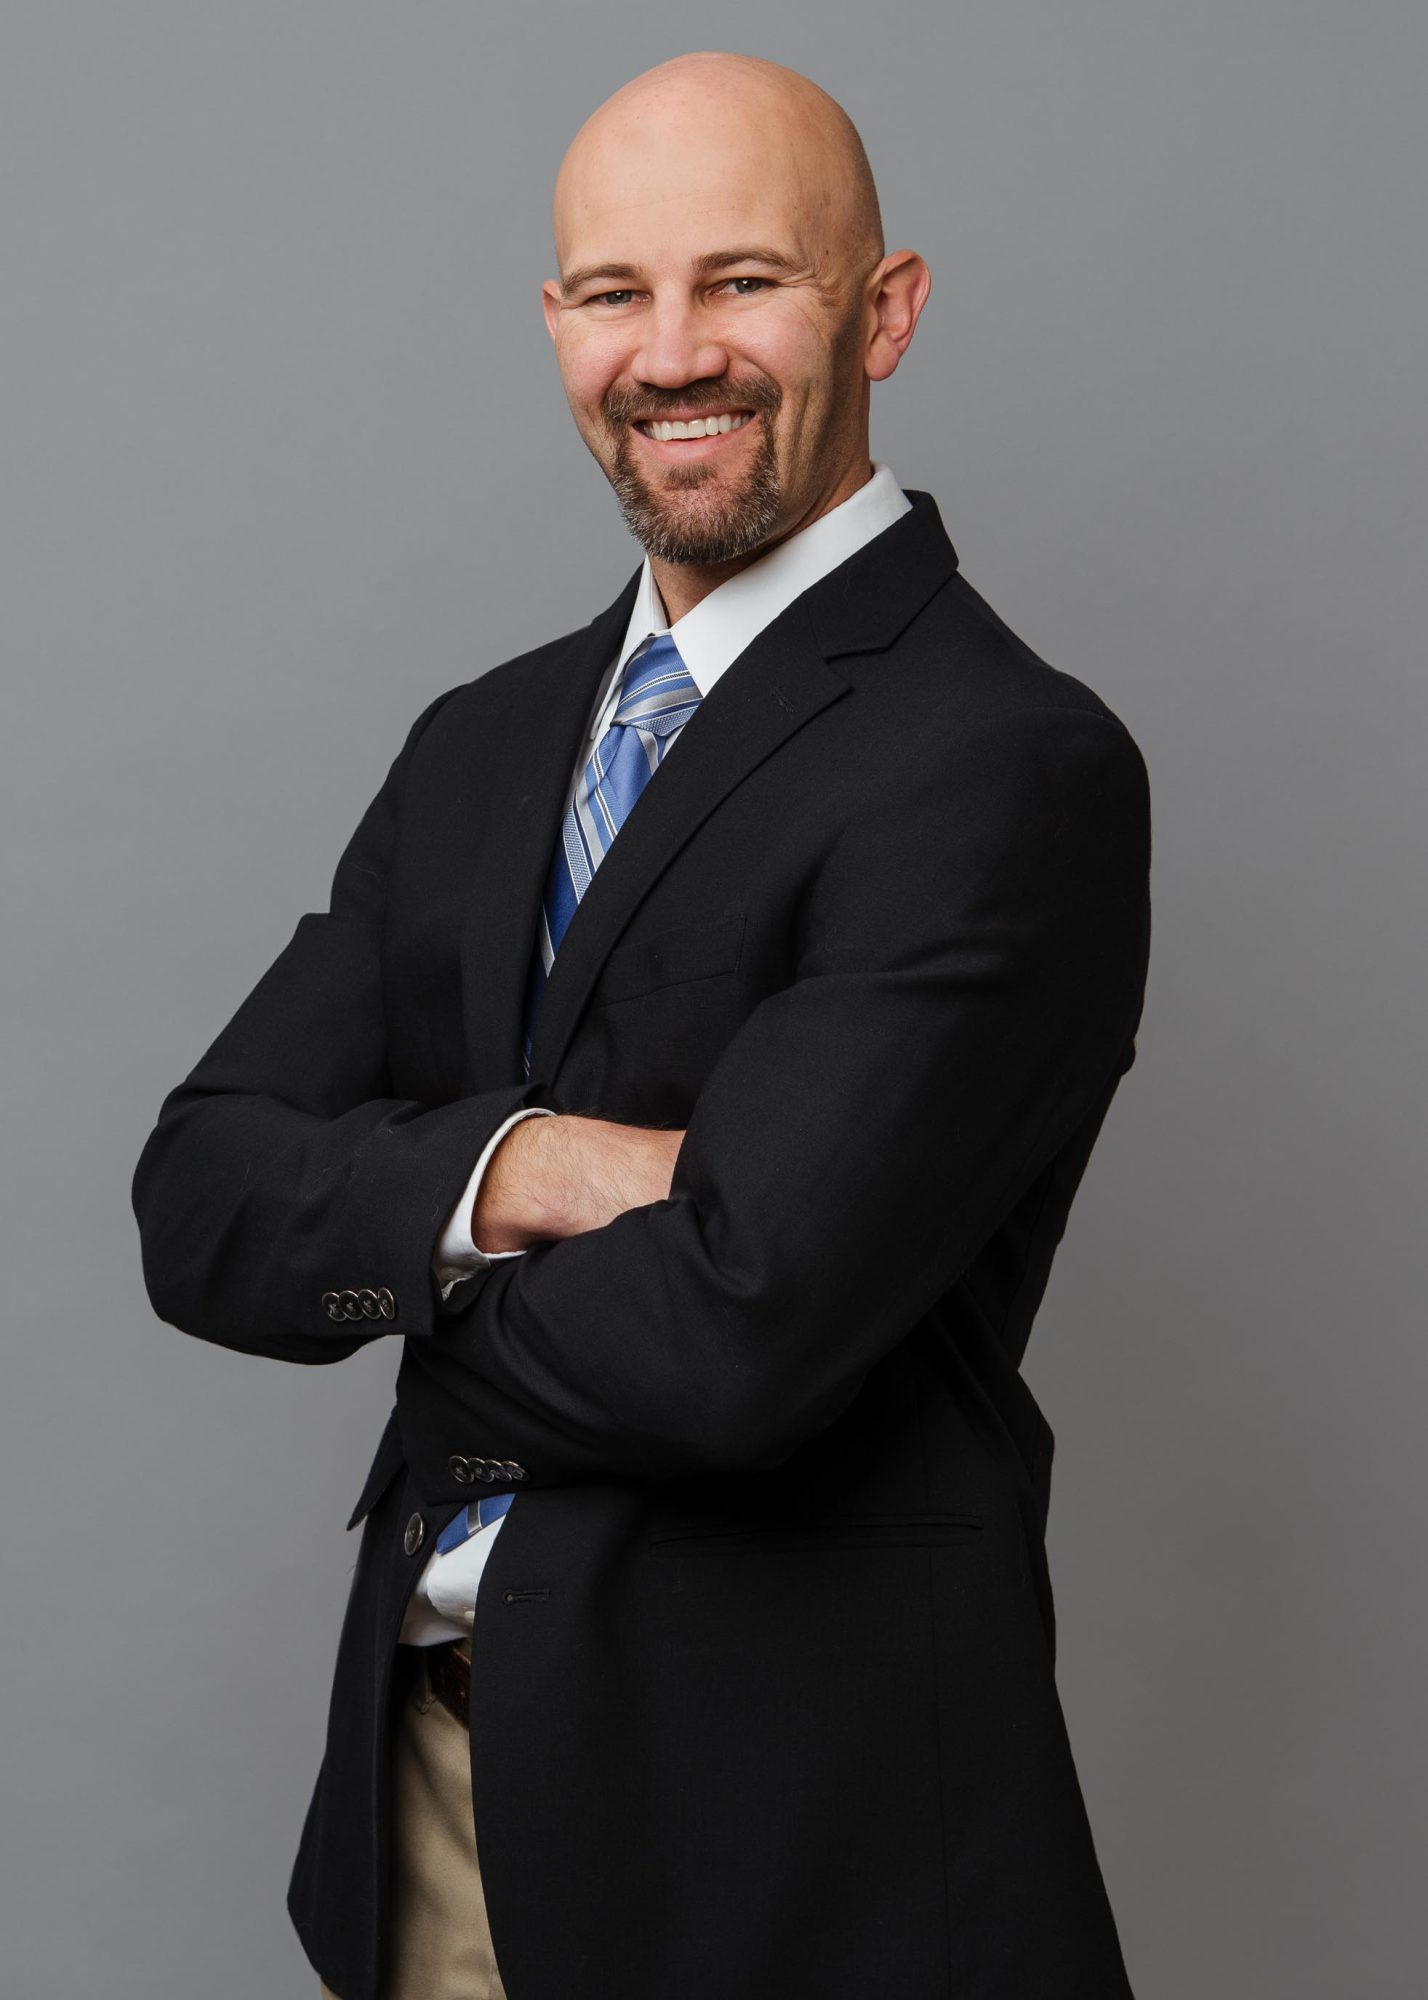 Photo of Andrew Stith, MD